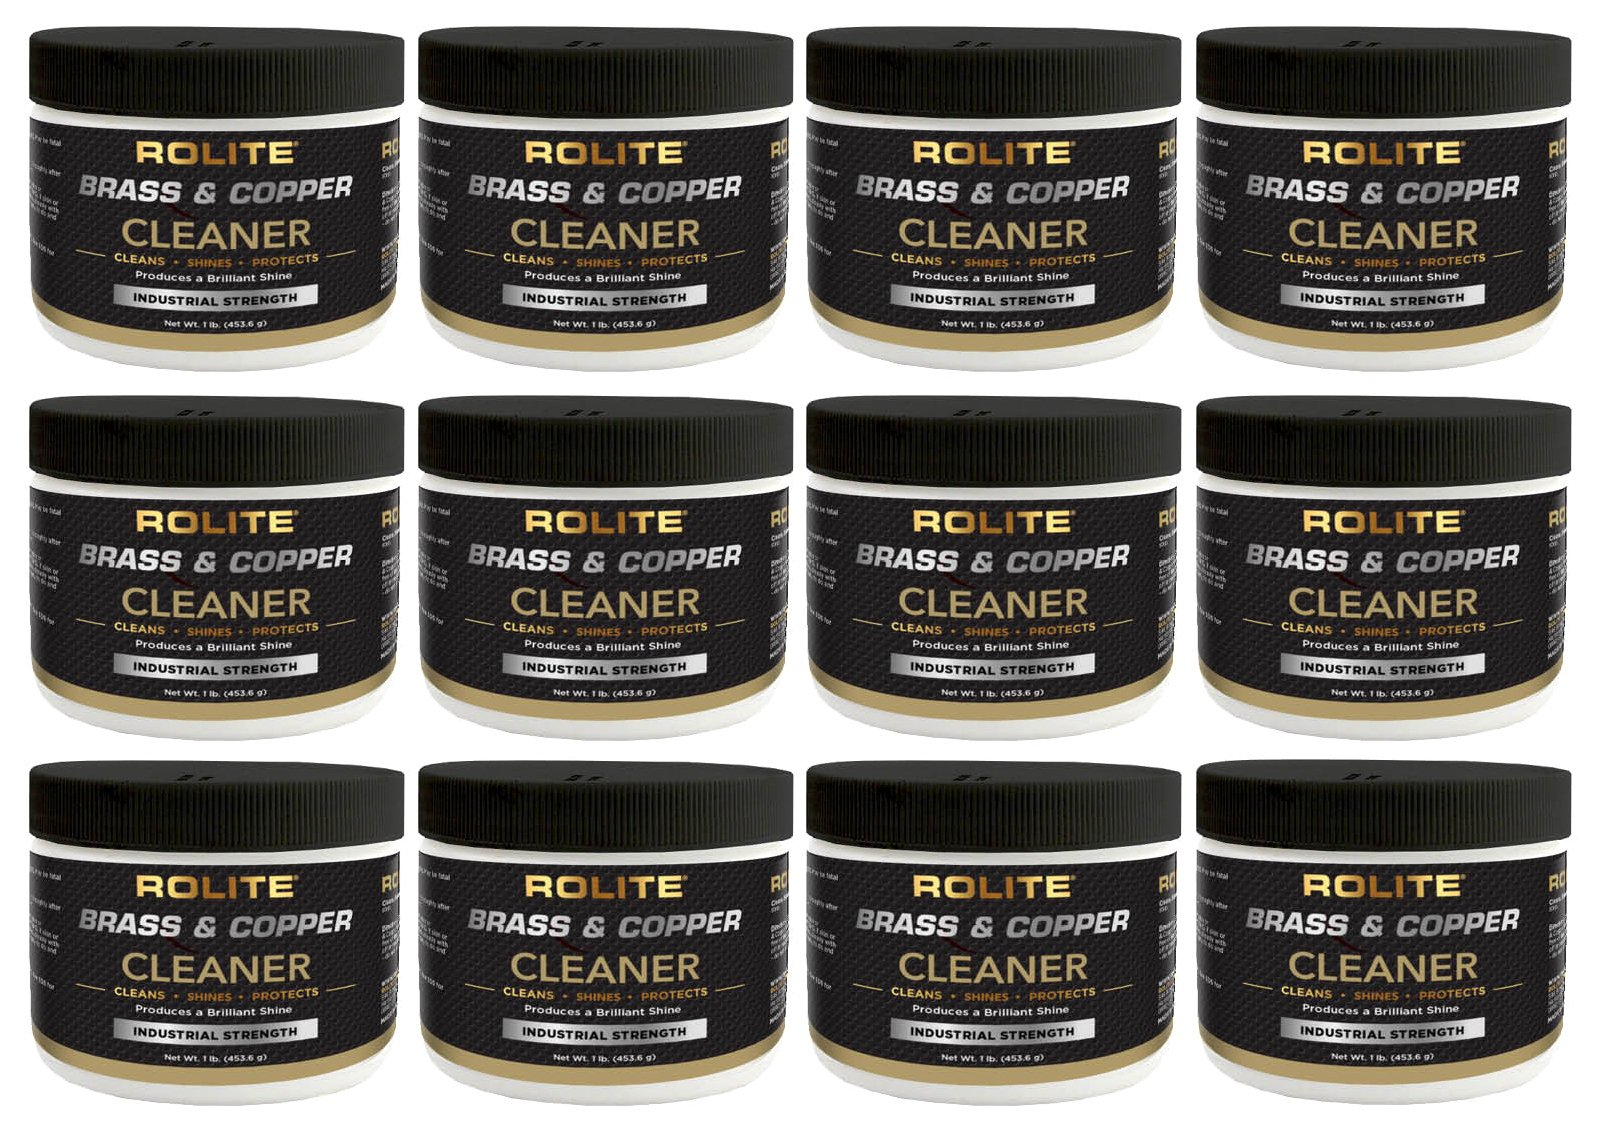 Rolite Brass & Copper Cleaner (1lb) Instant Cleaning & Tarnish Removal on Railings, Elevators, Fixtures, Hotels, Cruise Ships, Buildings 12 Pack